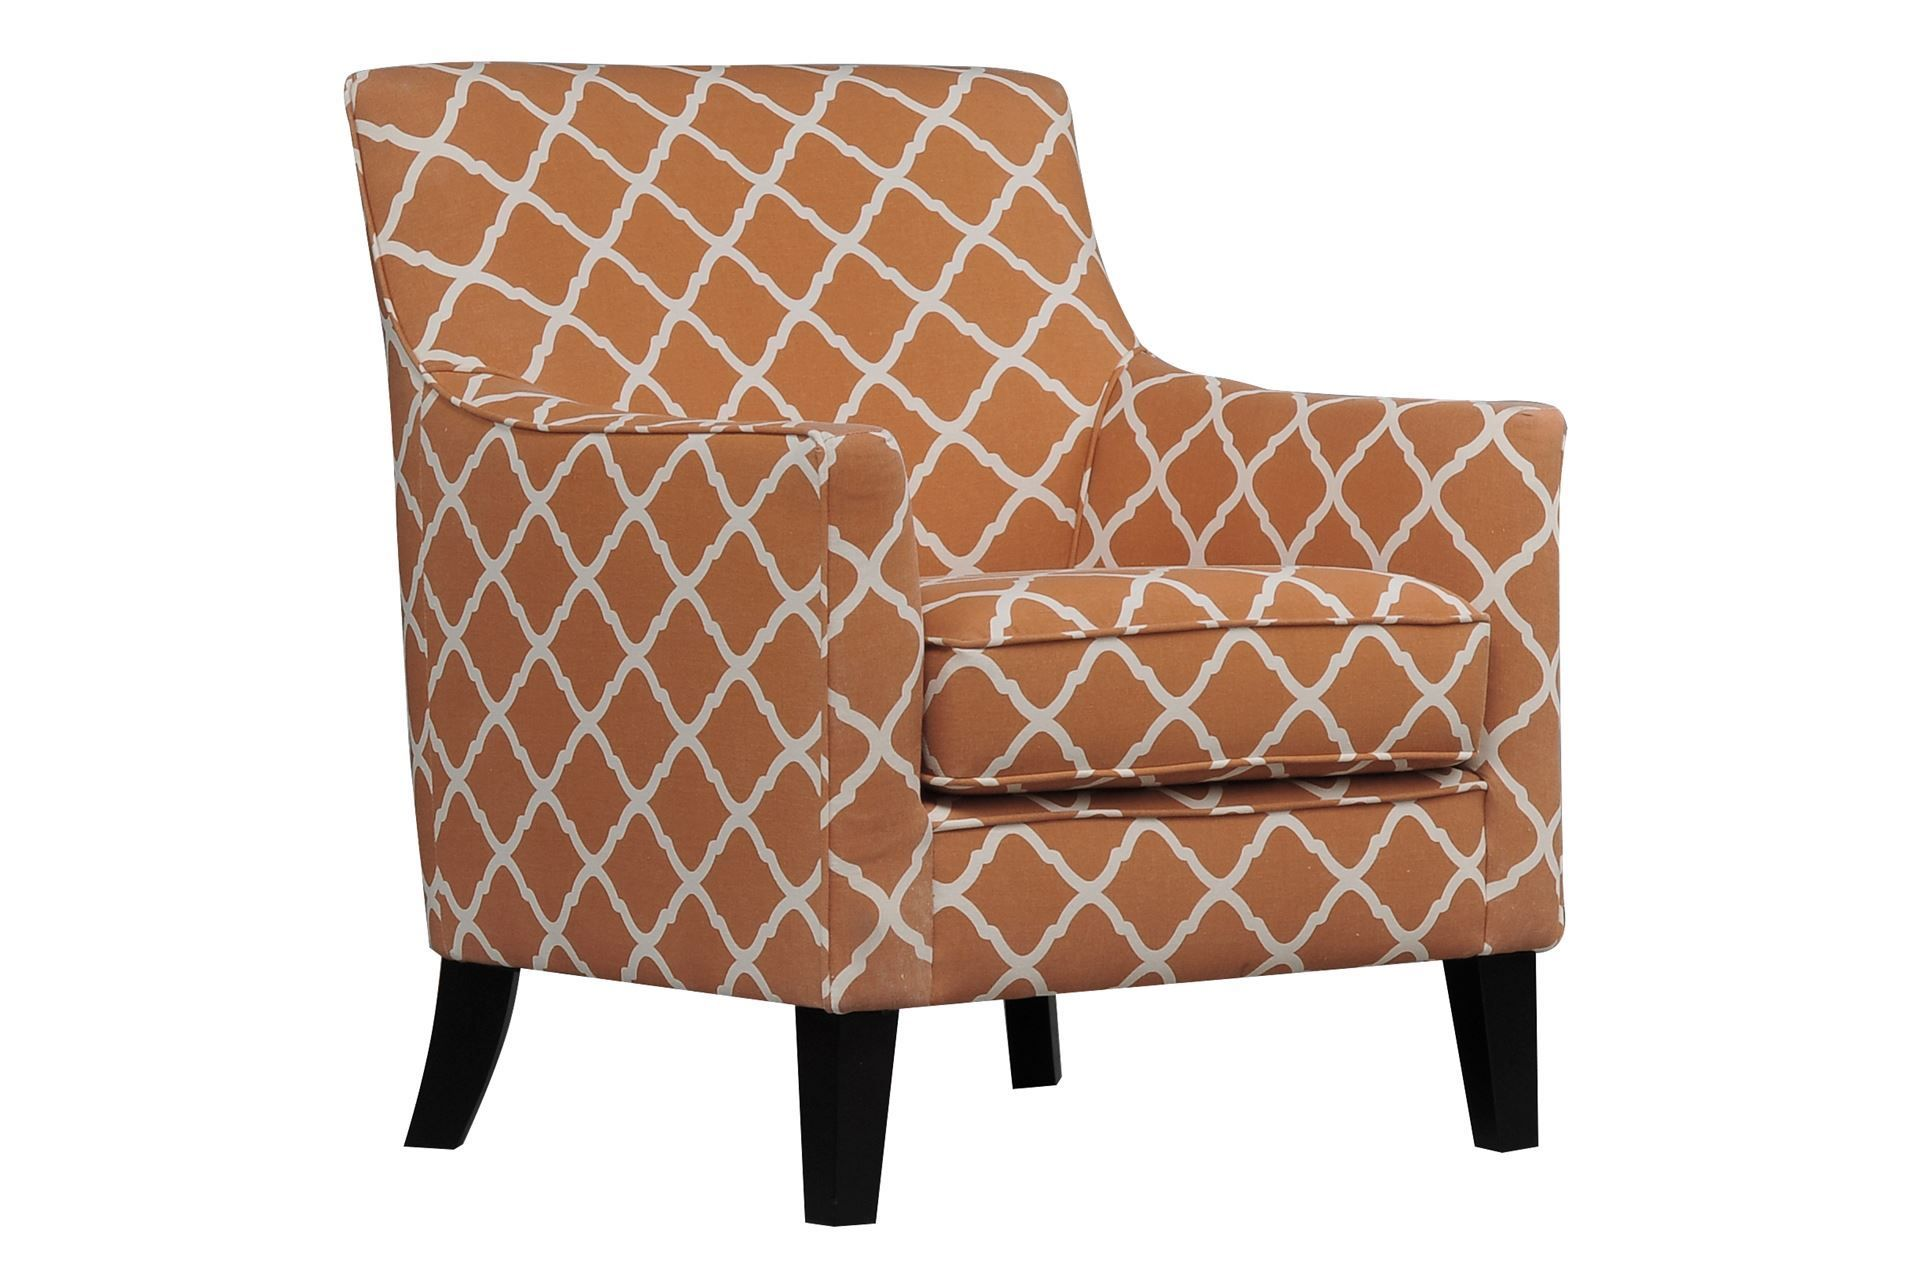 Superb Spice Up Your Space With The Kendall Orange Accent Chair. The Trellis  Pattern Is Sure